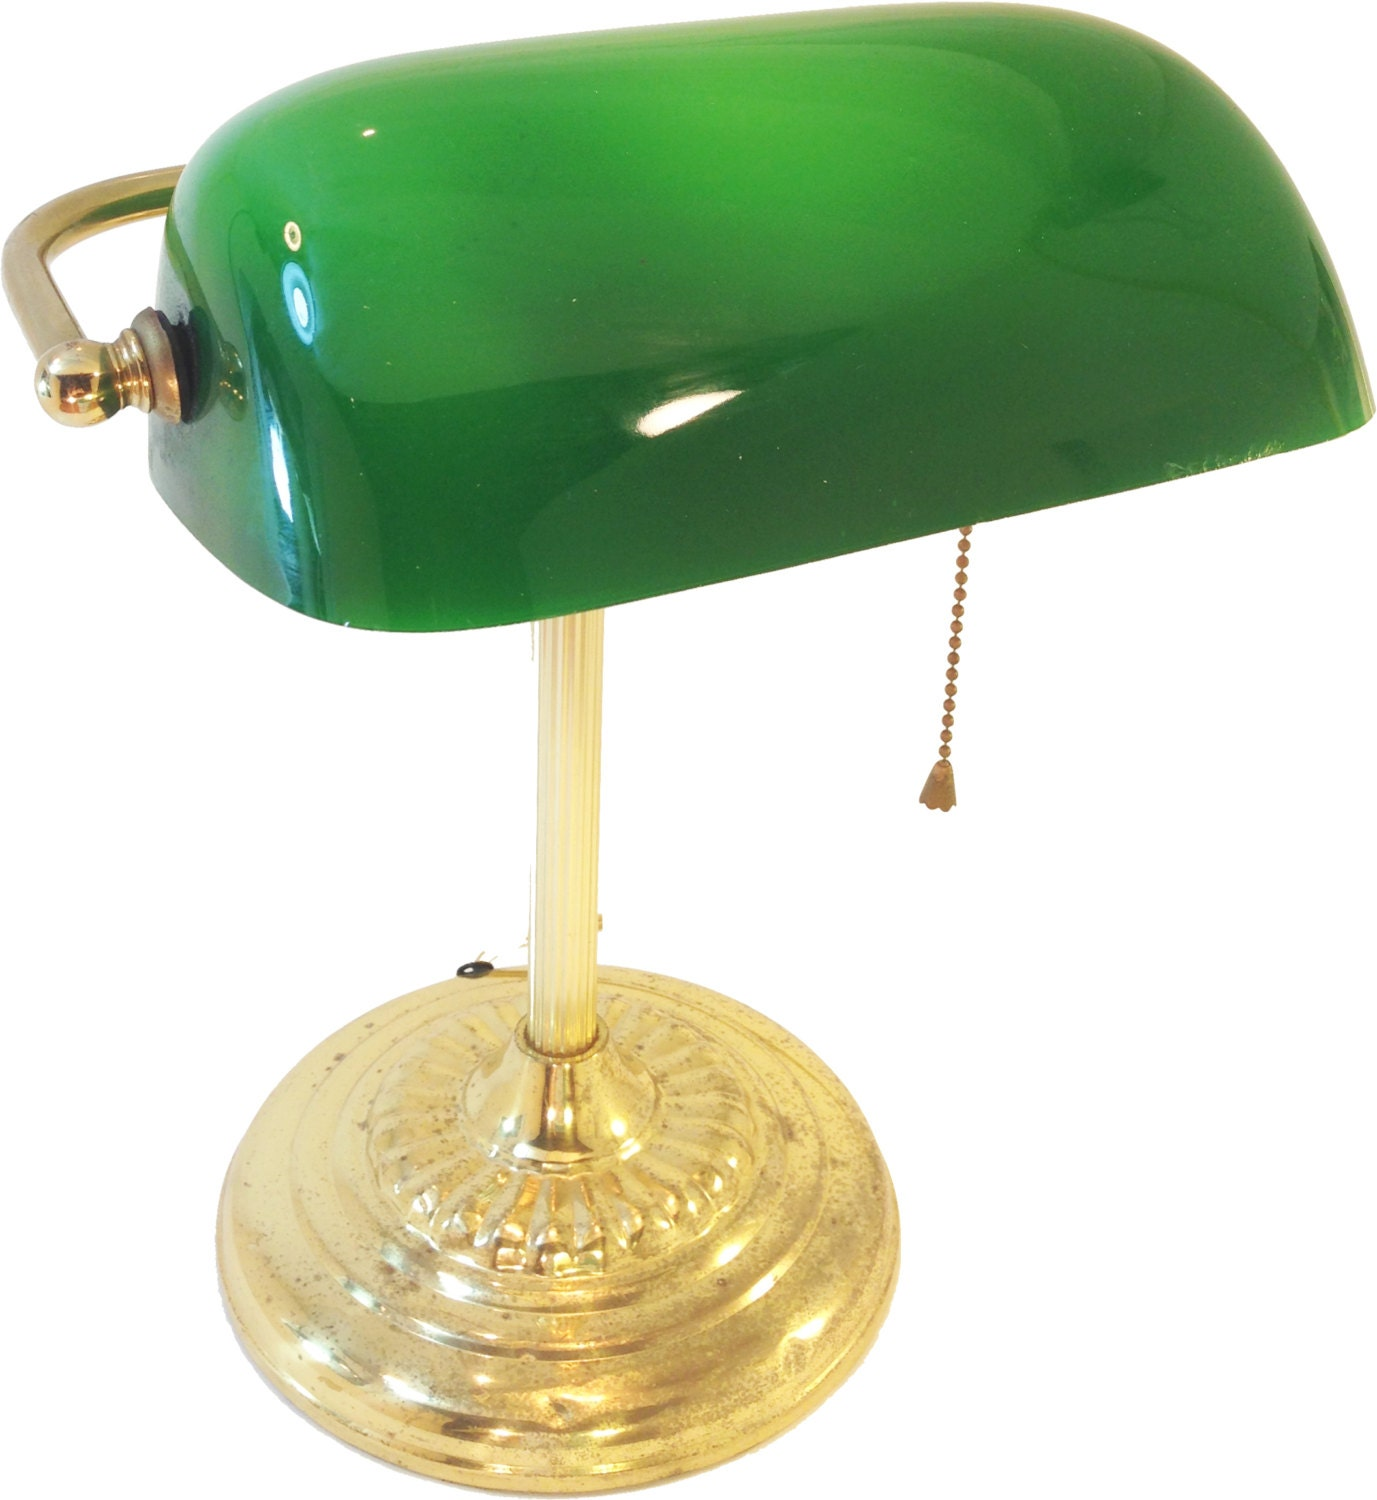 Authentic Vintage Bankers Desk Lamp Brass & by RecycledRevival